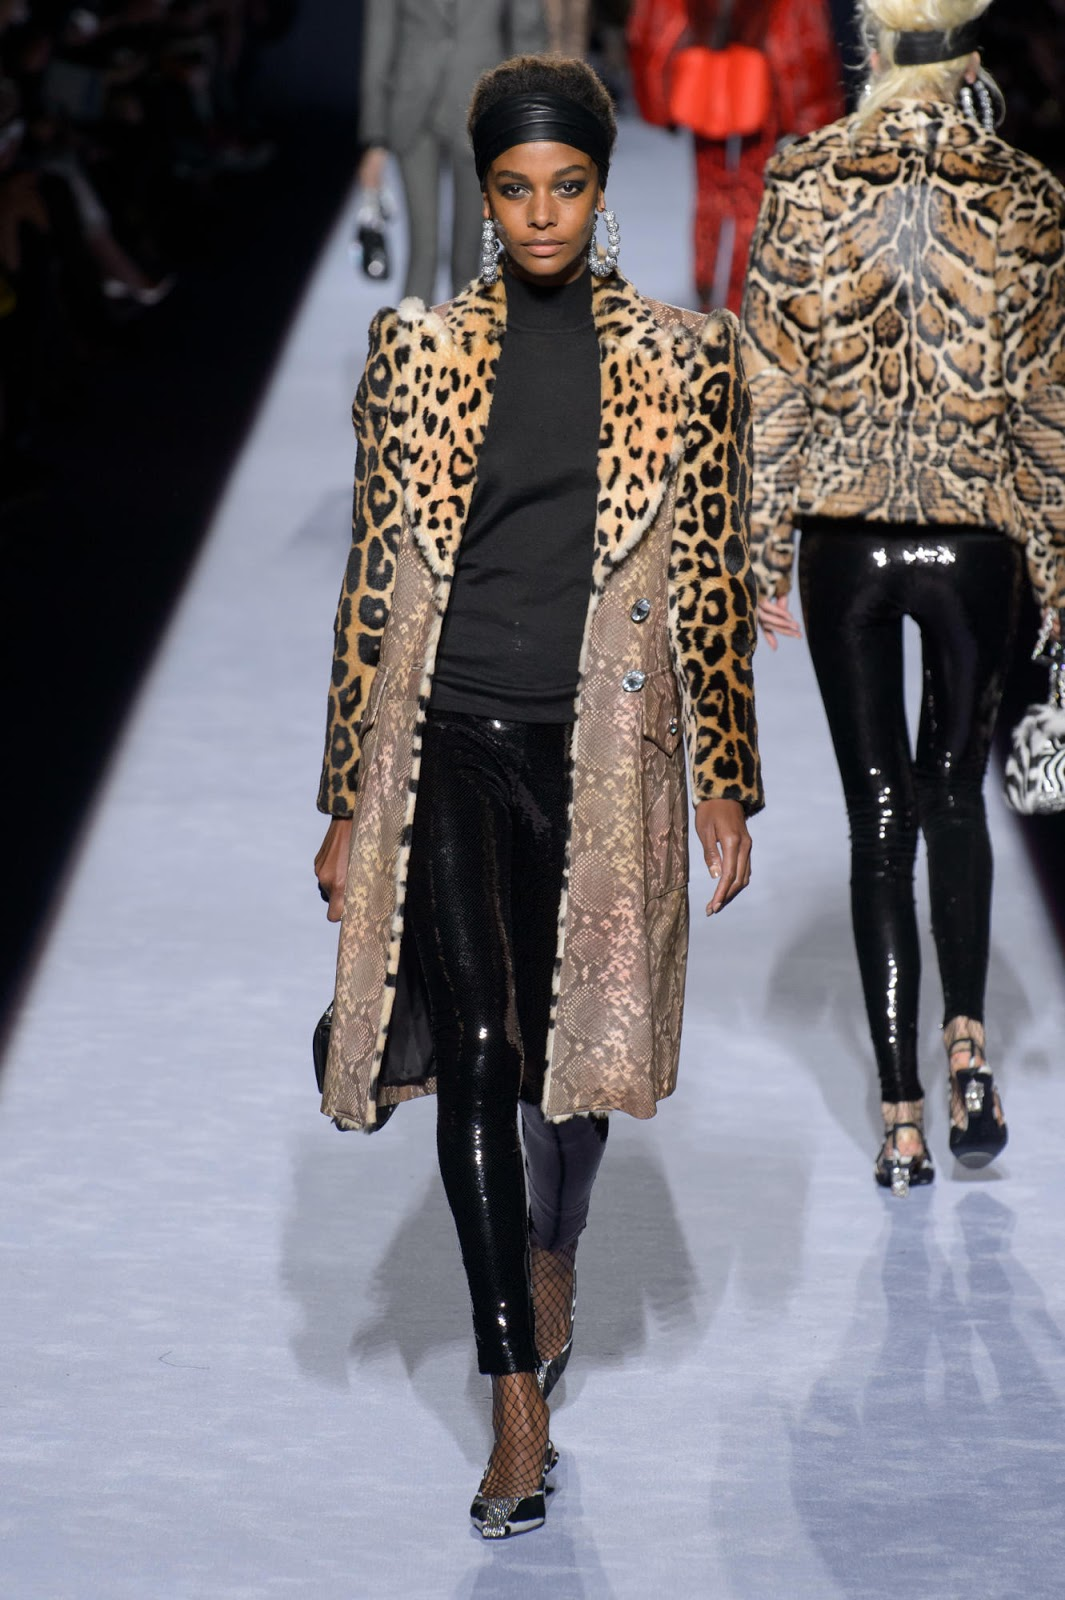 bdfc09e3b277 The collection was an  80s mix of bright colors and animal prints. Models  were decked in cheetah spots